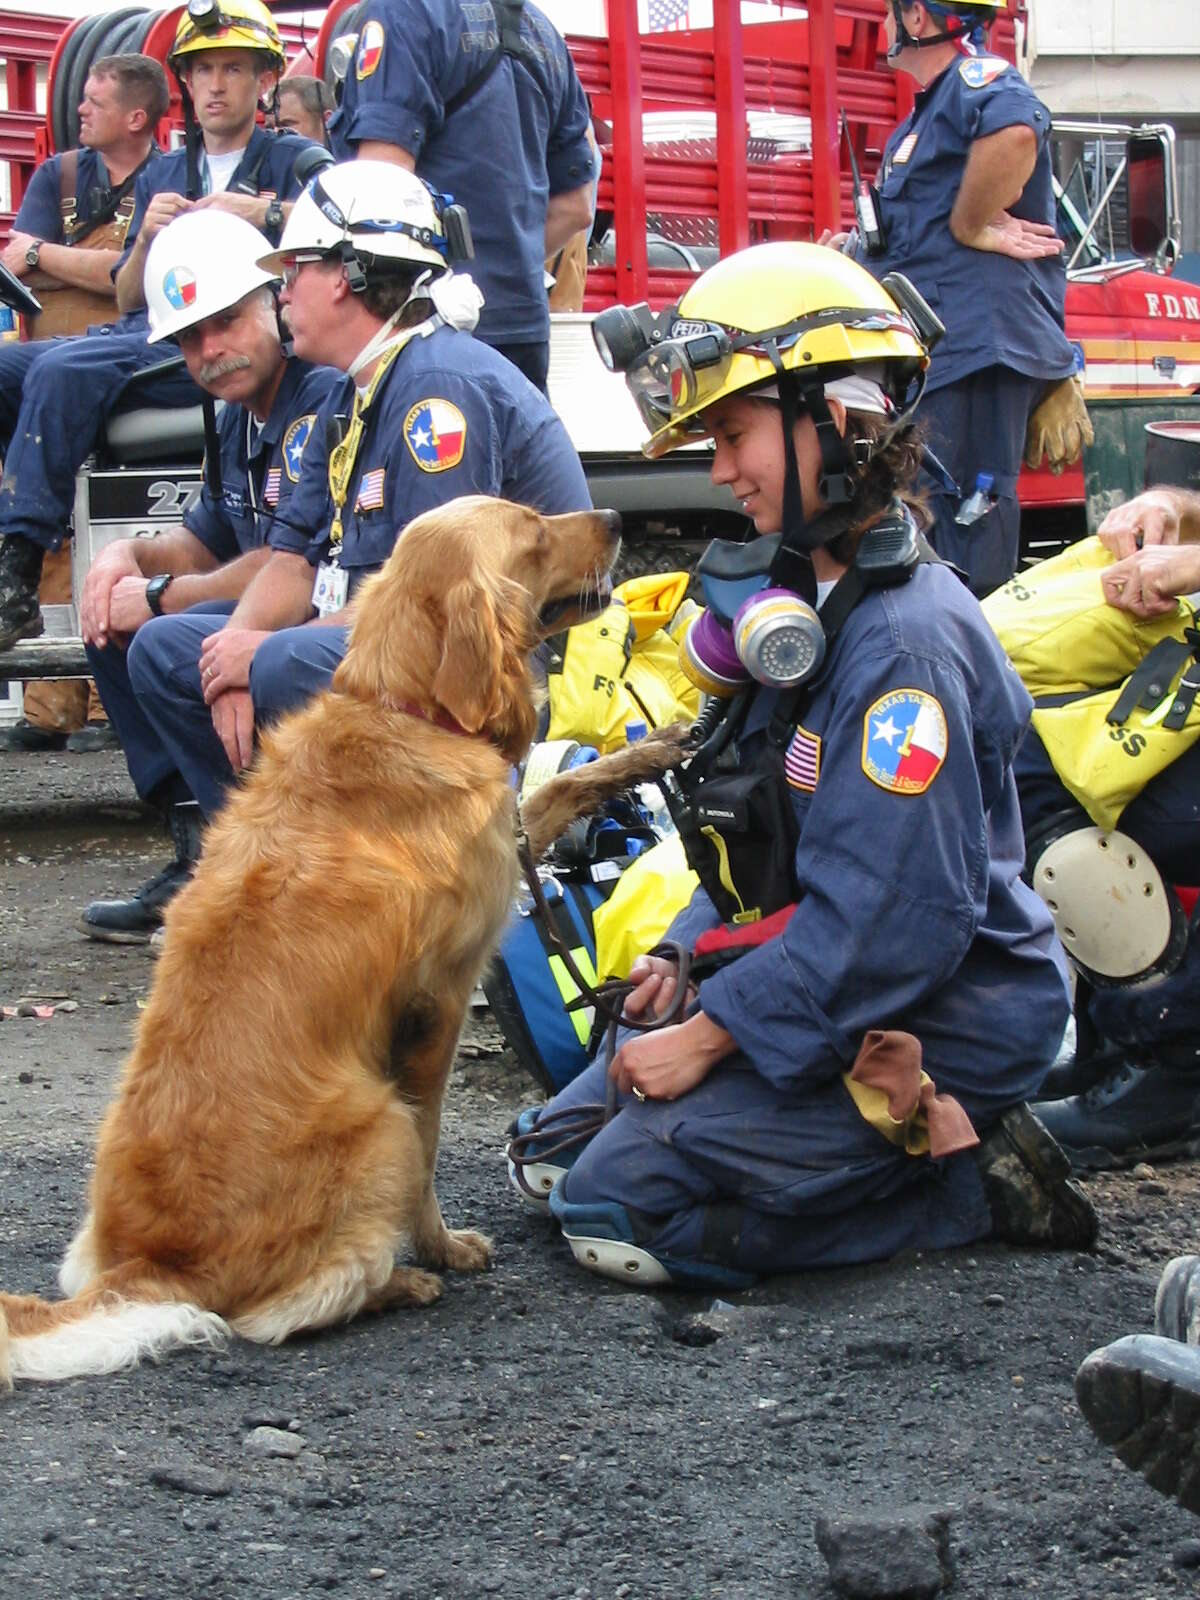 As the country recovered from the 9/11 attacks, hundreds of heavy-hearted search and rescue teams were deployed to places like Ground Zero to sift through the tragedy in search of fellow Americans. The grief-stricken area was the first deployment for San Antonio native Denise Corliss and her golden-hearted golden retriever, Bretagne.